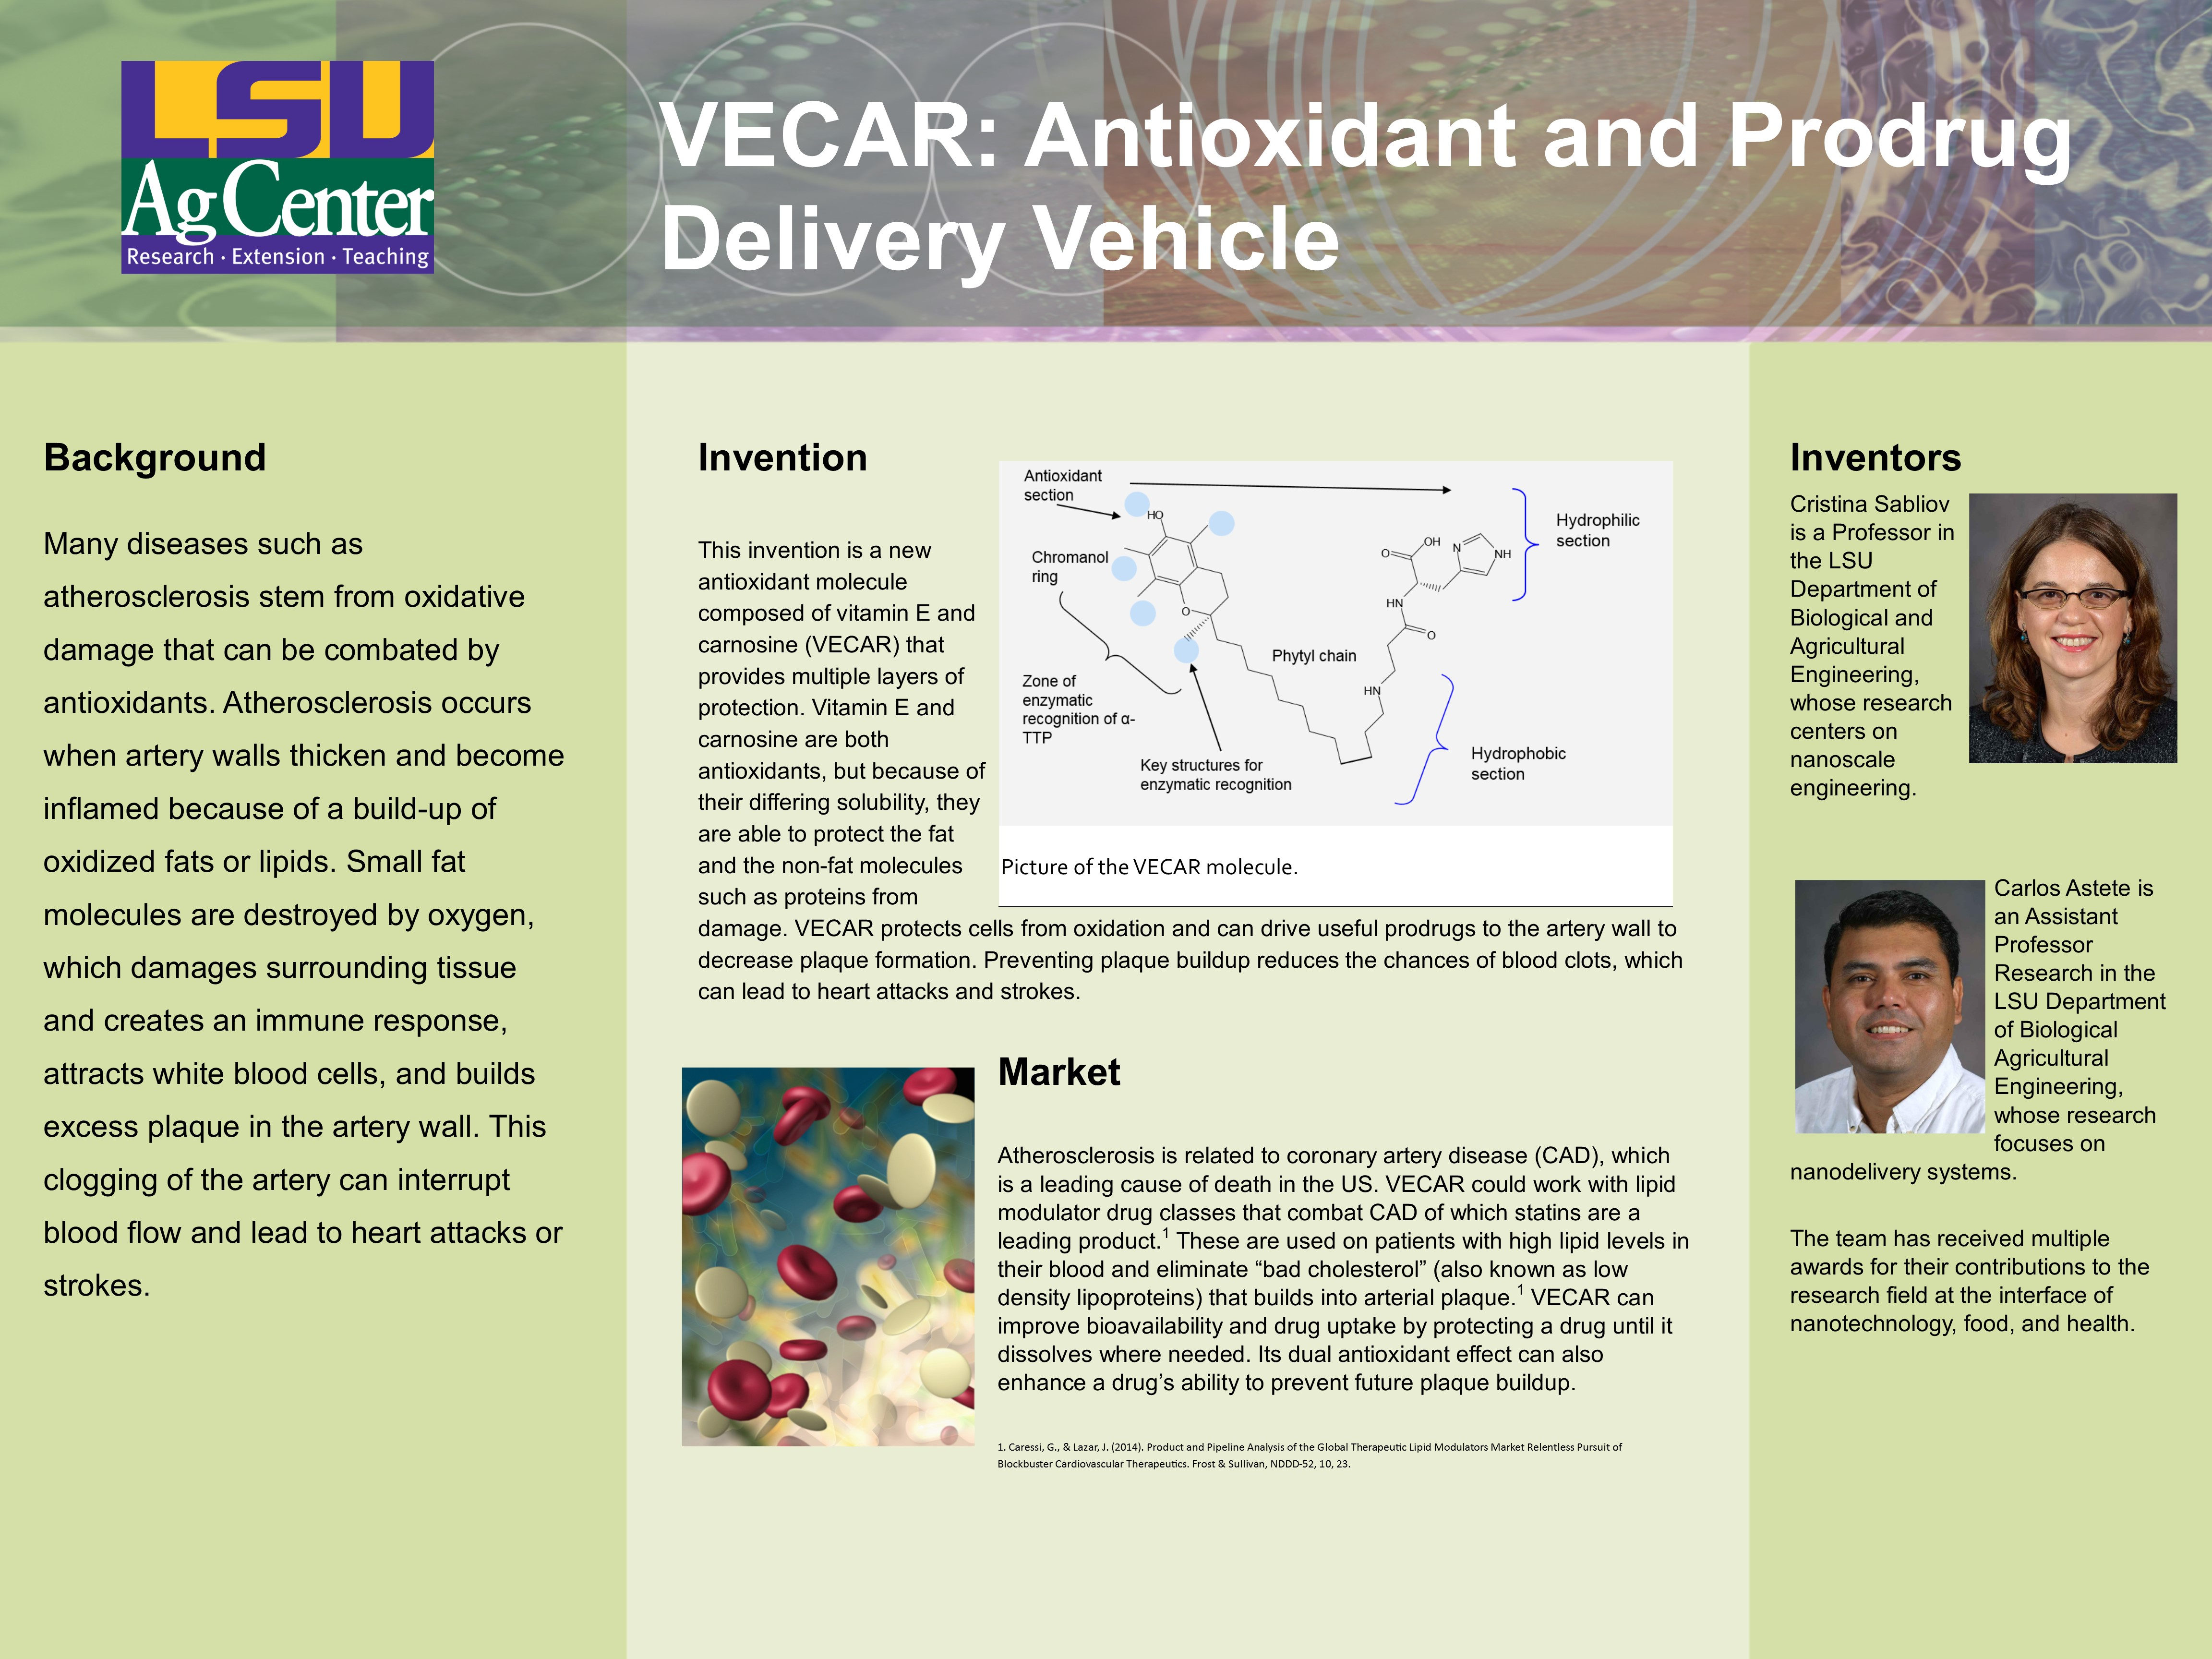 IP-PosterSessionTemplate VECAR Final 96jjpg